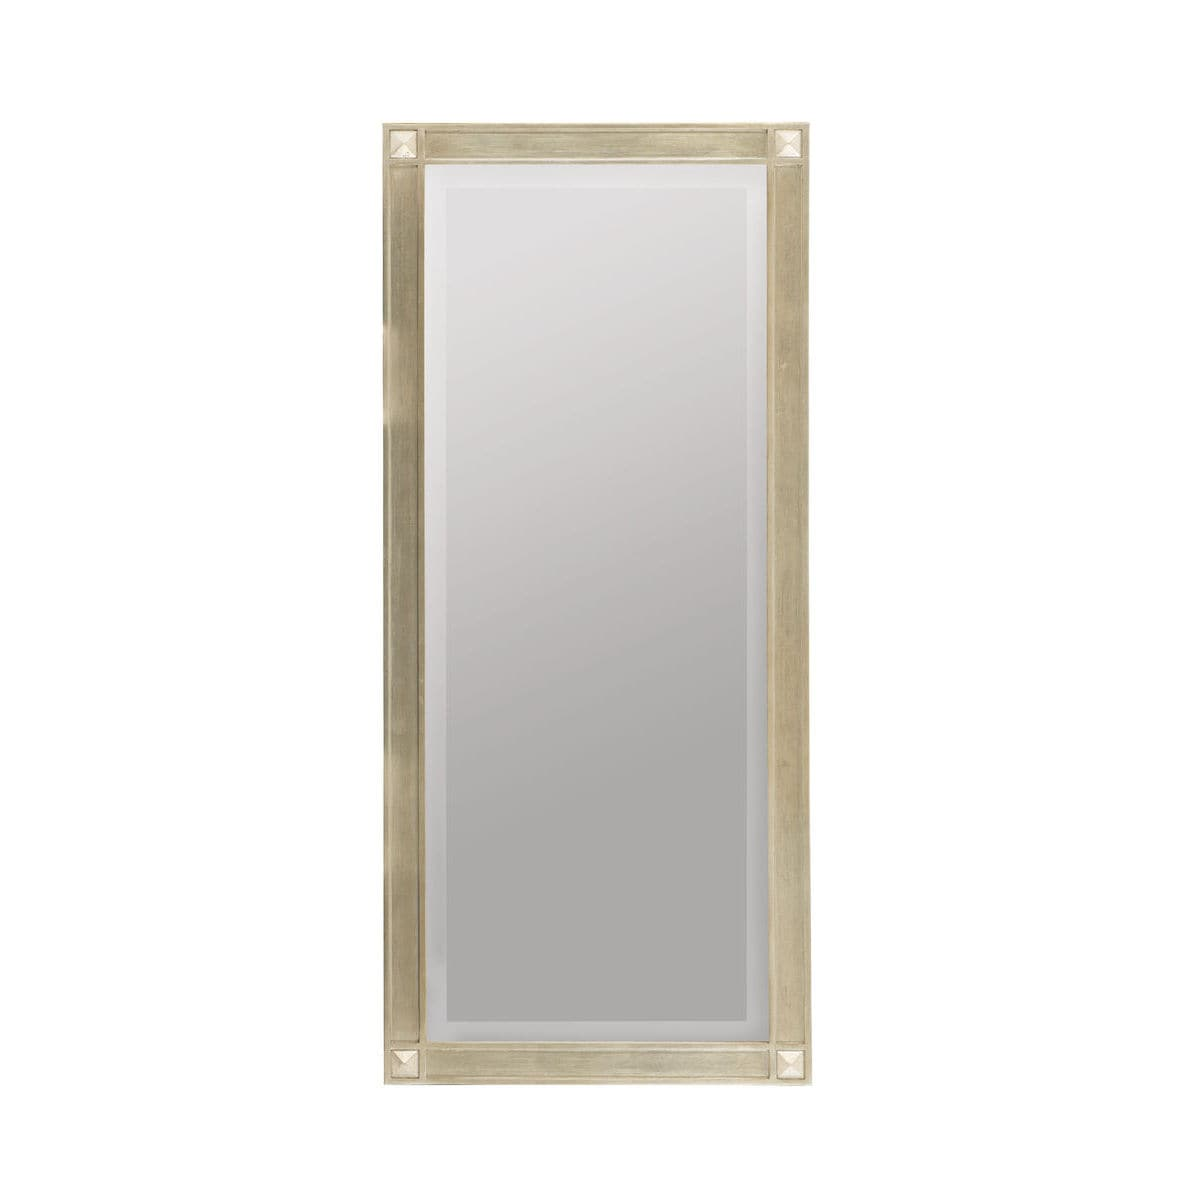 Wall Mounted Mirror Bedroom Contemporary Rectangular